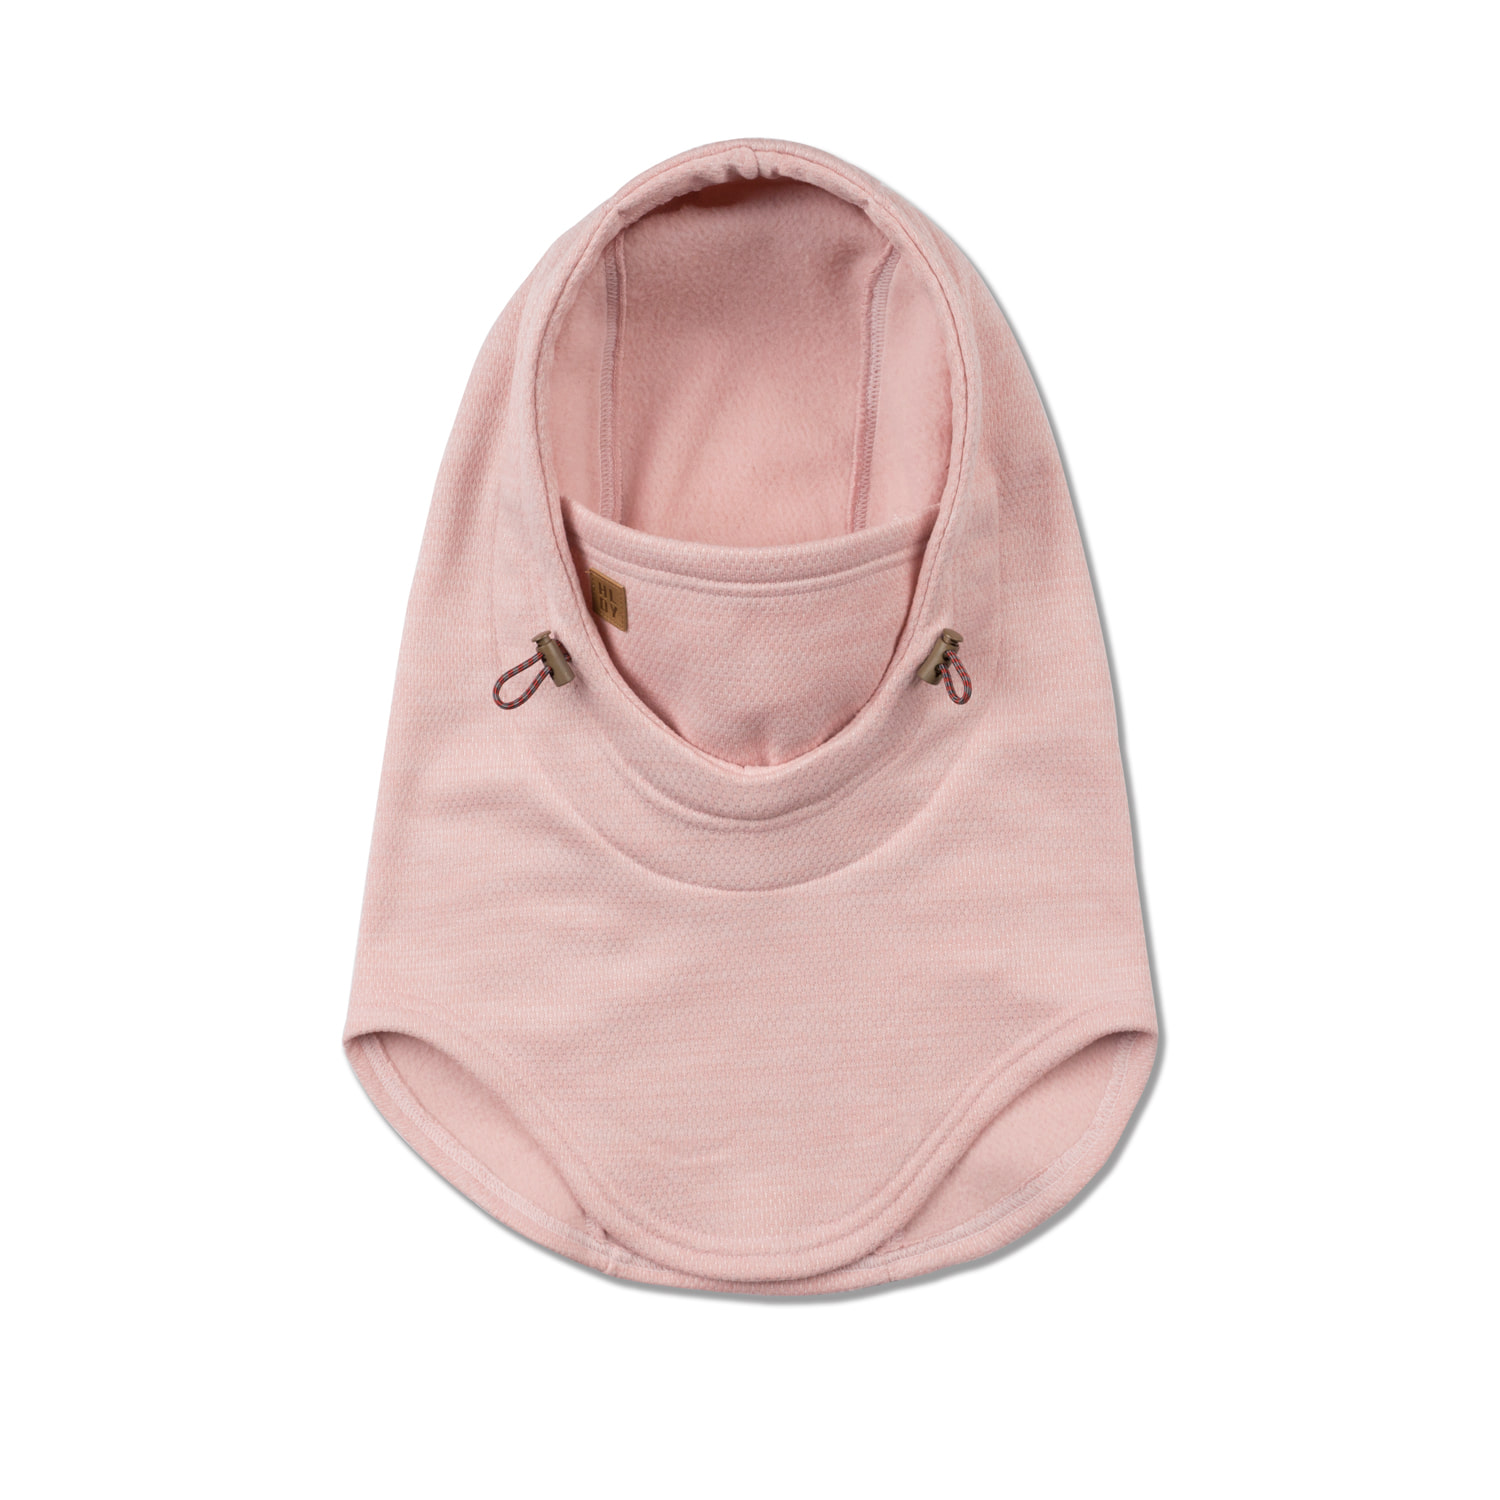 BASIC hood warmer- pinkHOLIDAY OUTERWEAR